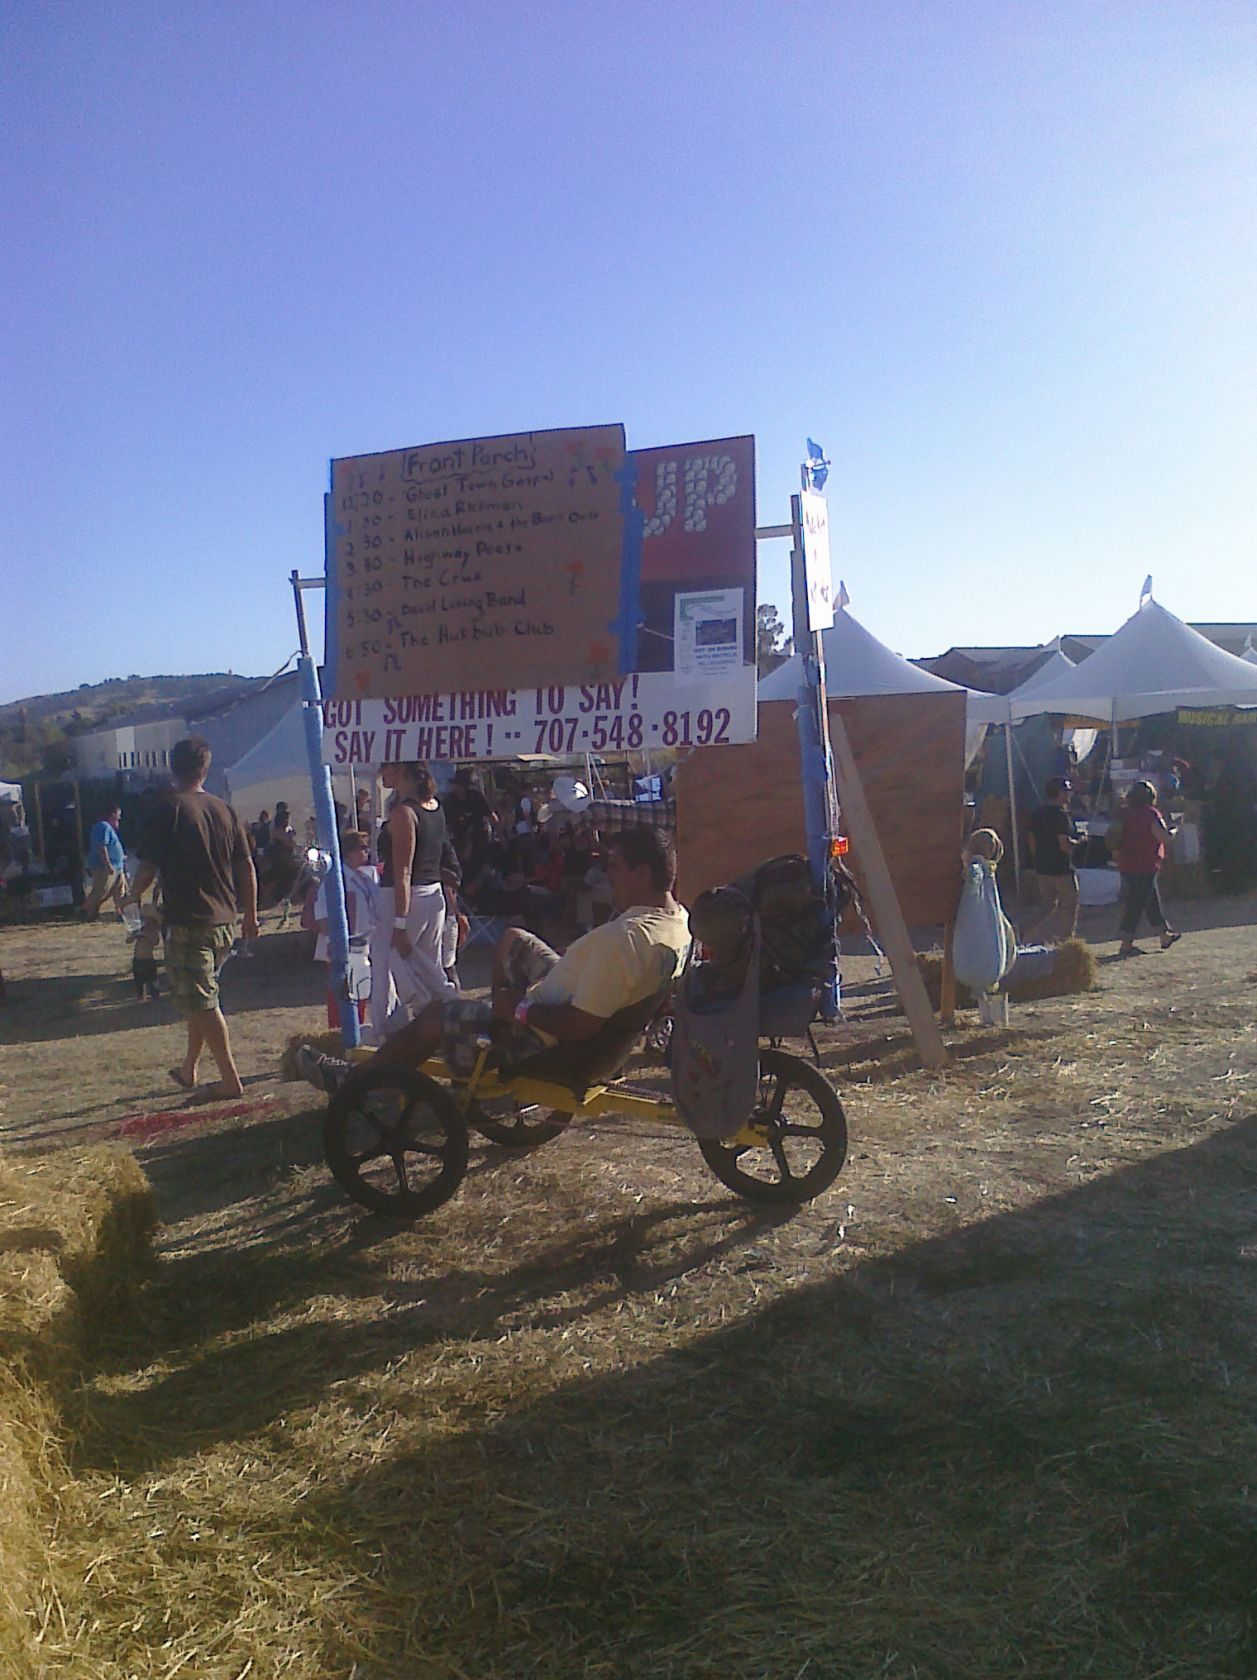 Reclining bike announcement board at Petaluma Rivertown Revival 2012. Photo by Summer Burkes.